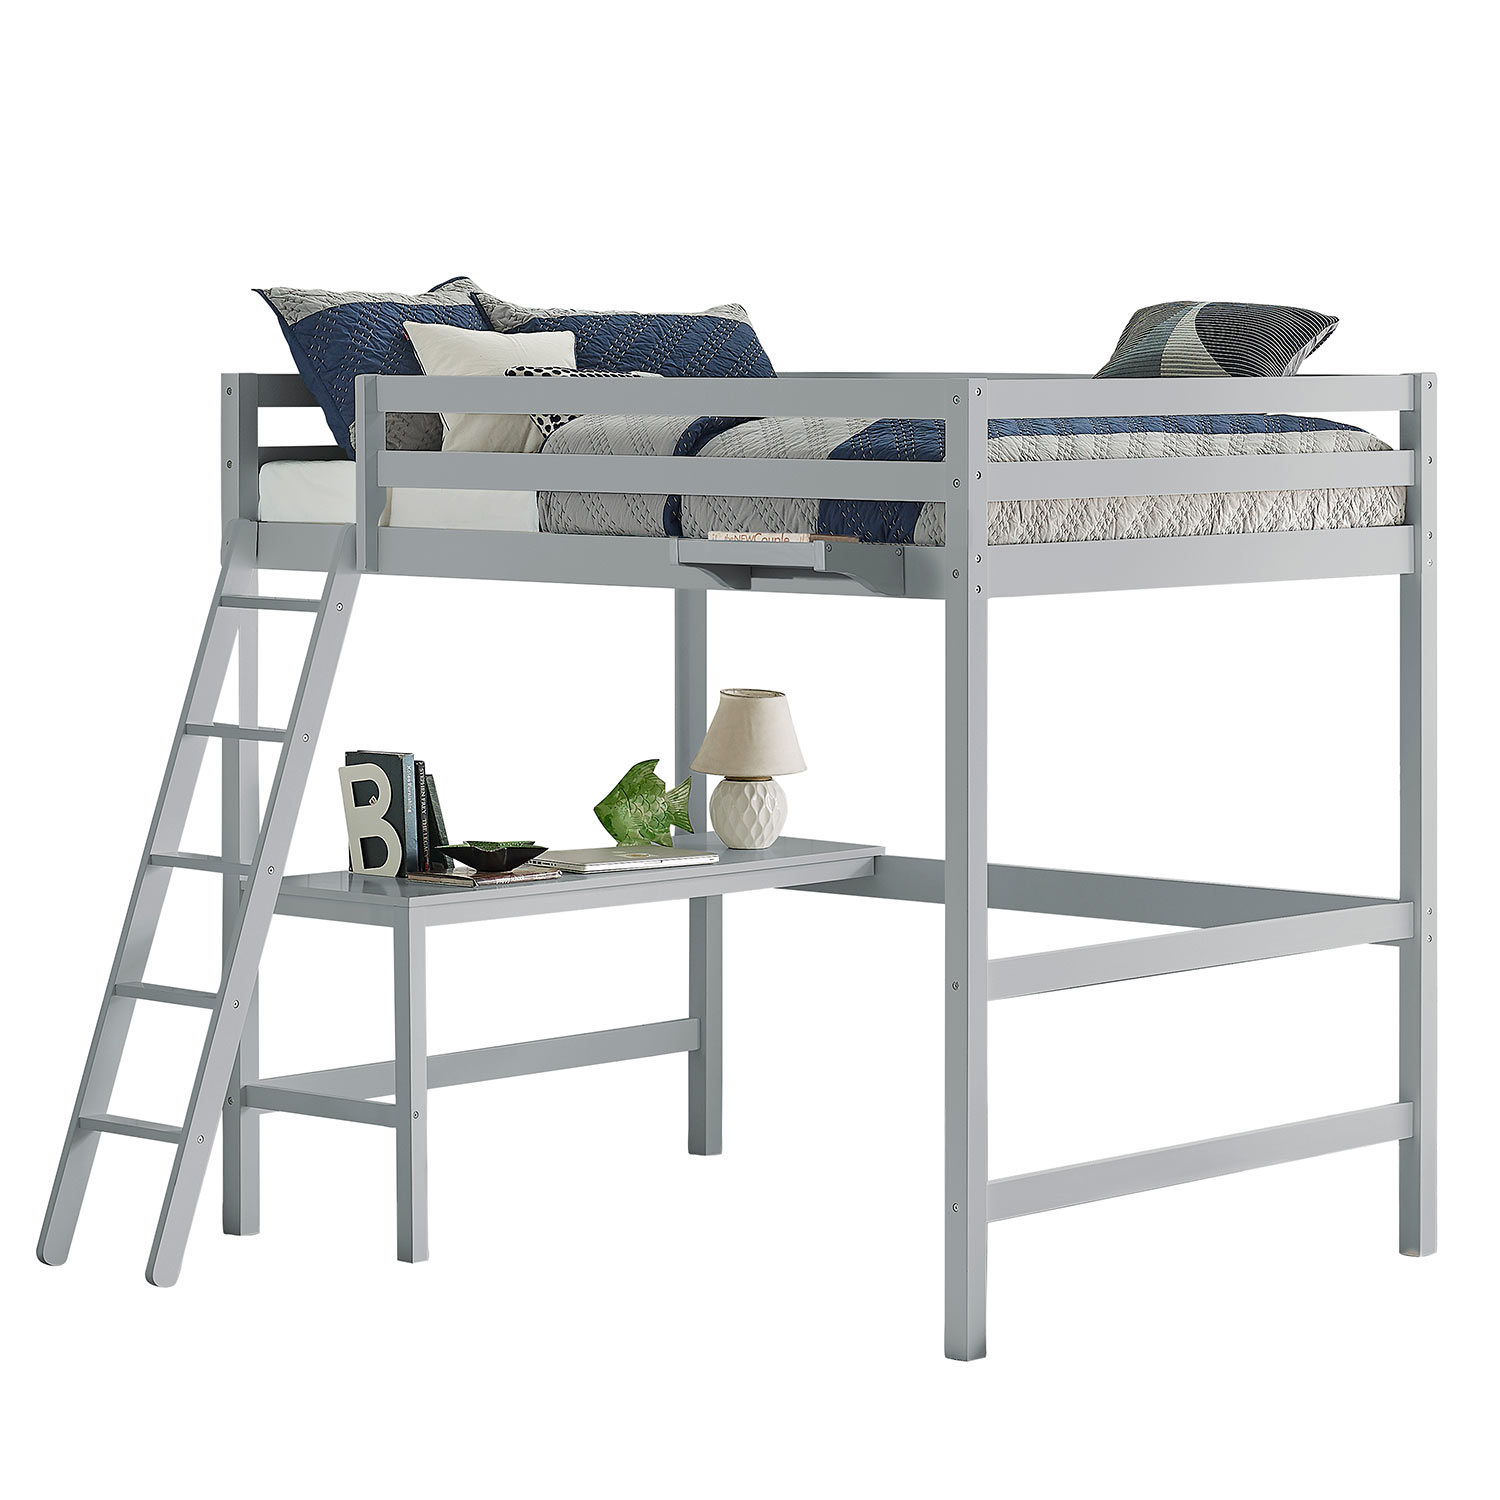 Hillsdale Caspian Full Loft Bed with Hanging Nightstand - Gray